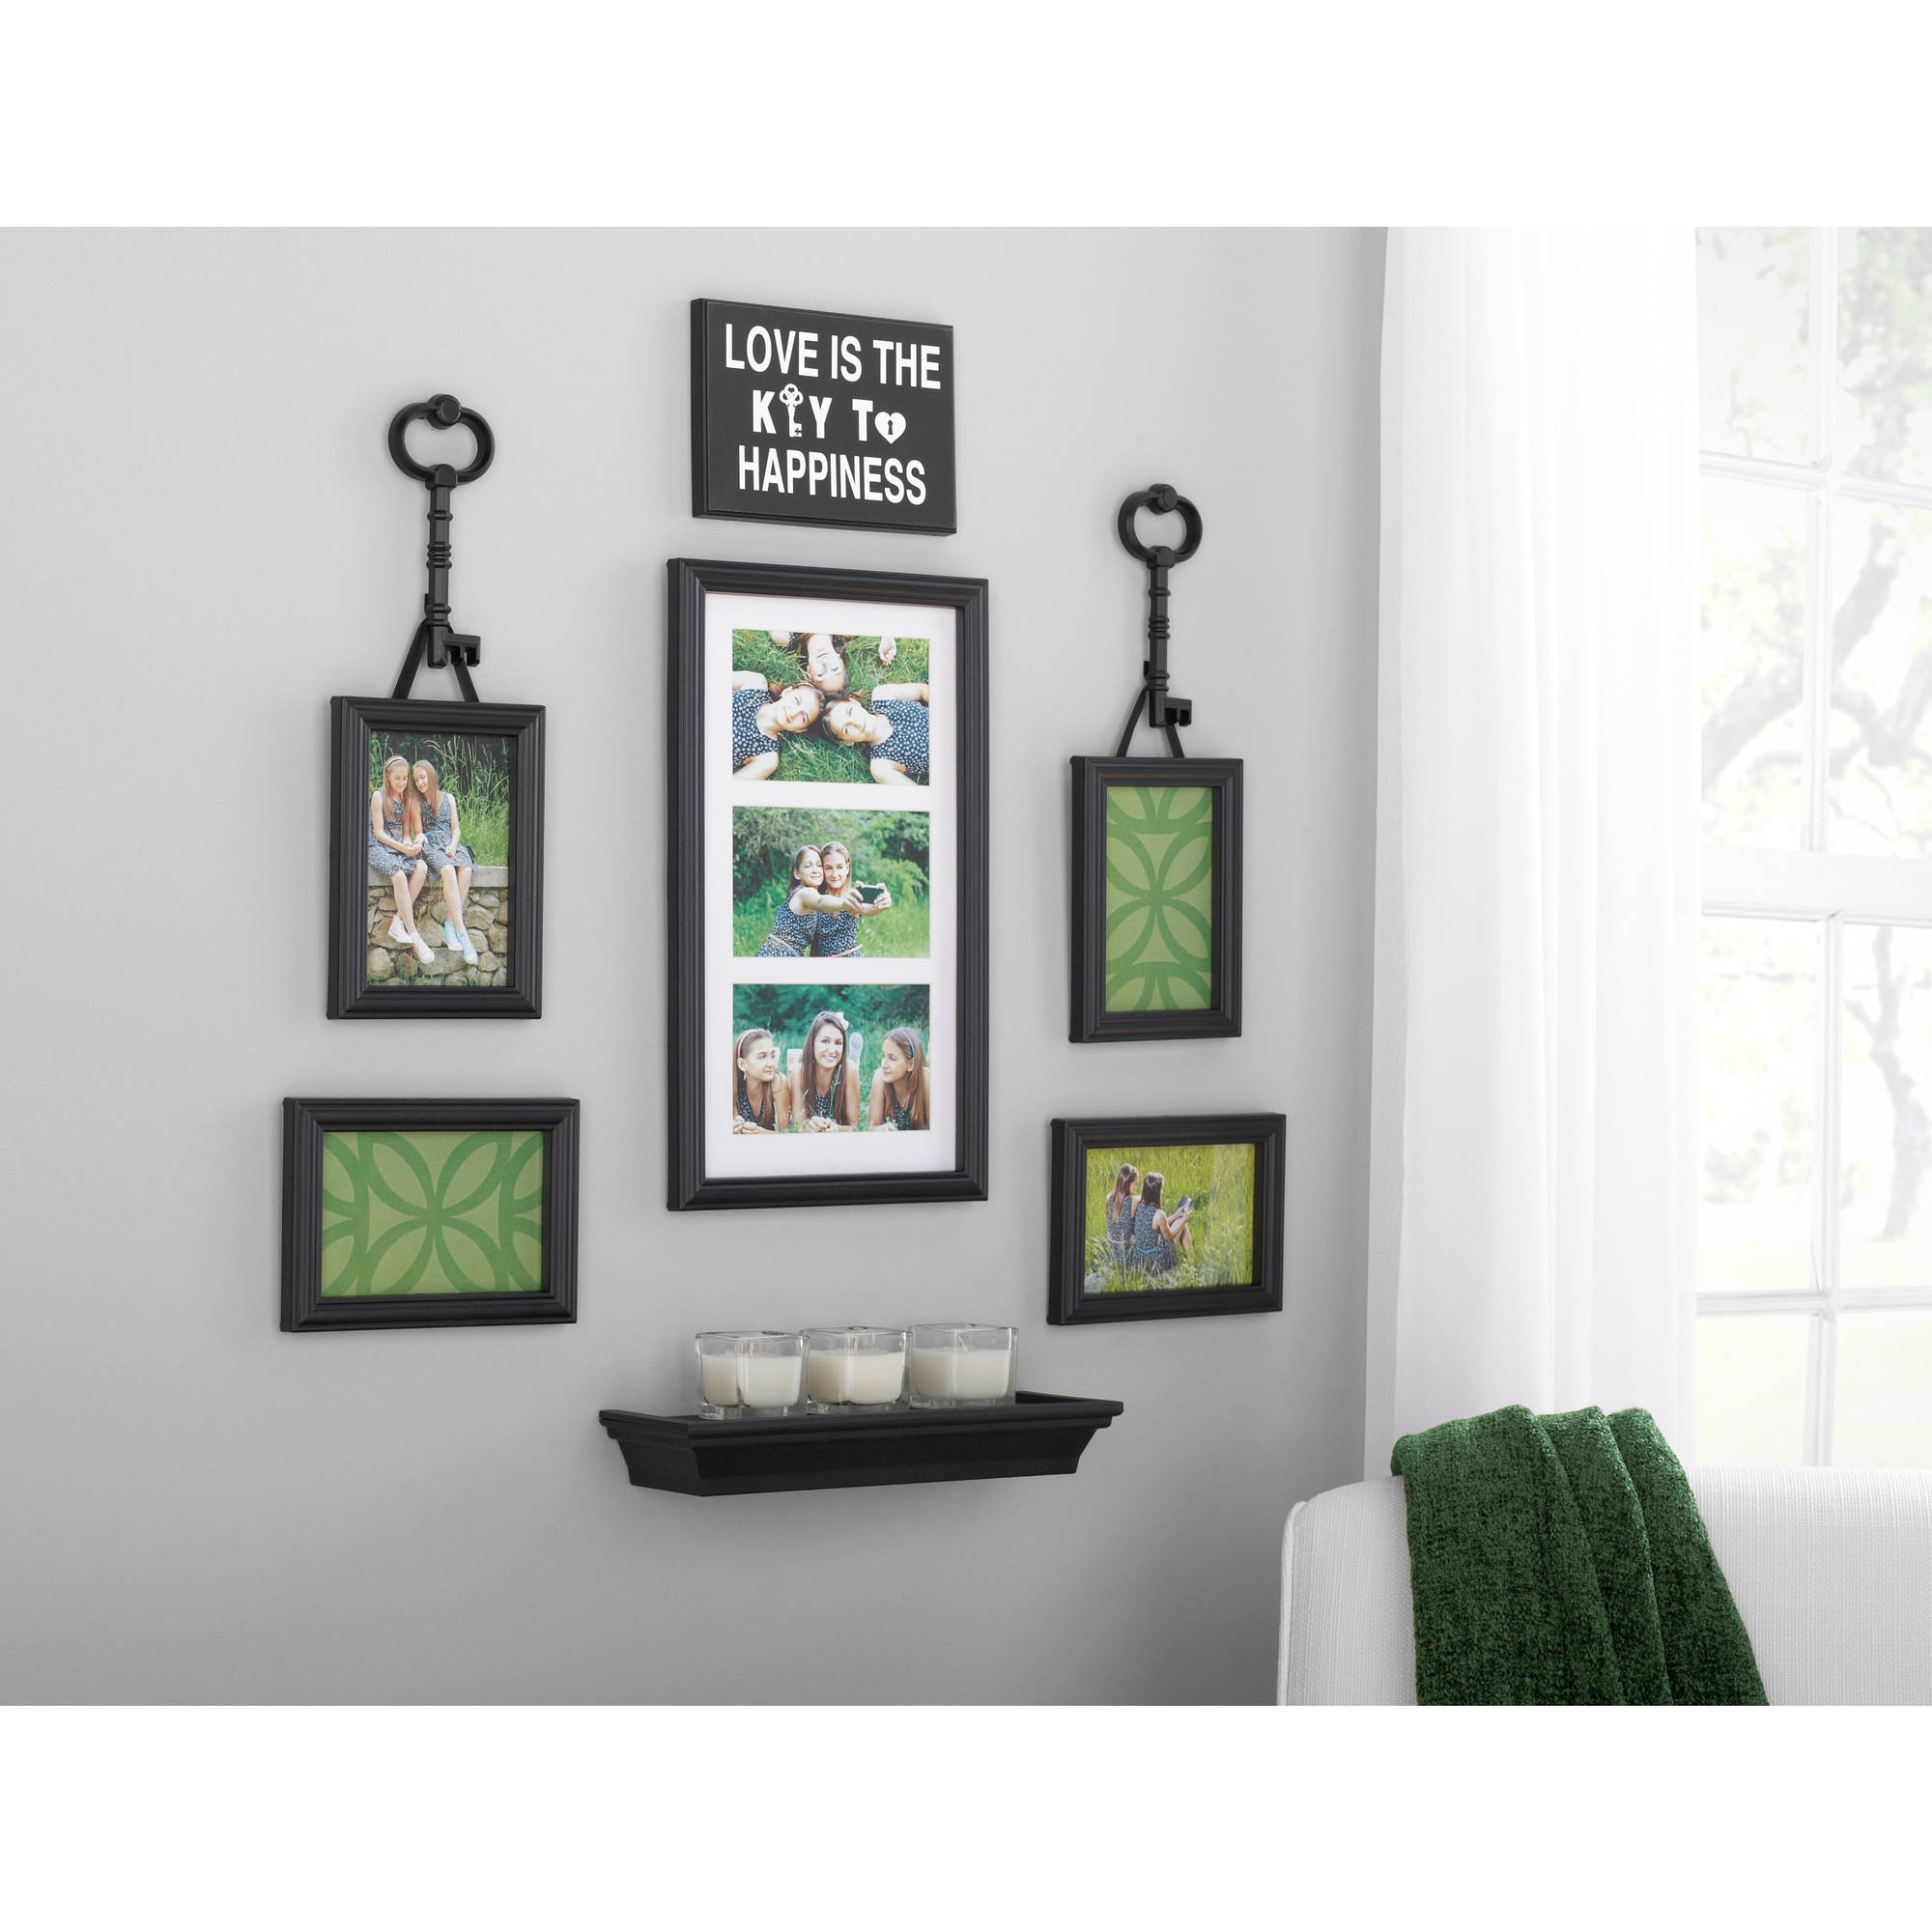 Mainstays 9 Piece Key Expression Wall Frame Set – Walmart In Popular 2 Piece Heart Shaped Fan Wall Decor Sets (View 10 of 20)